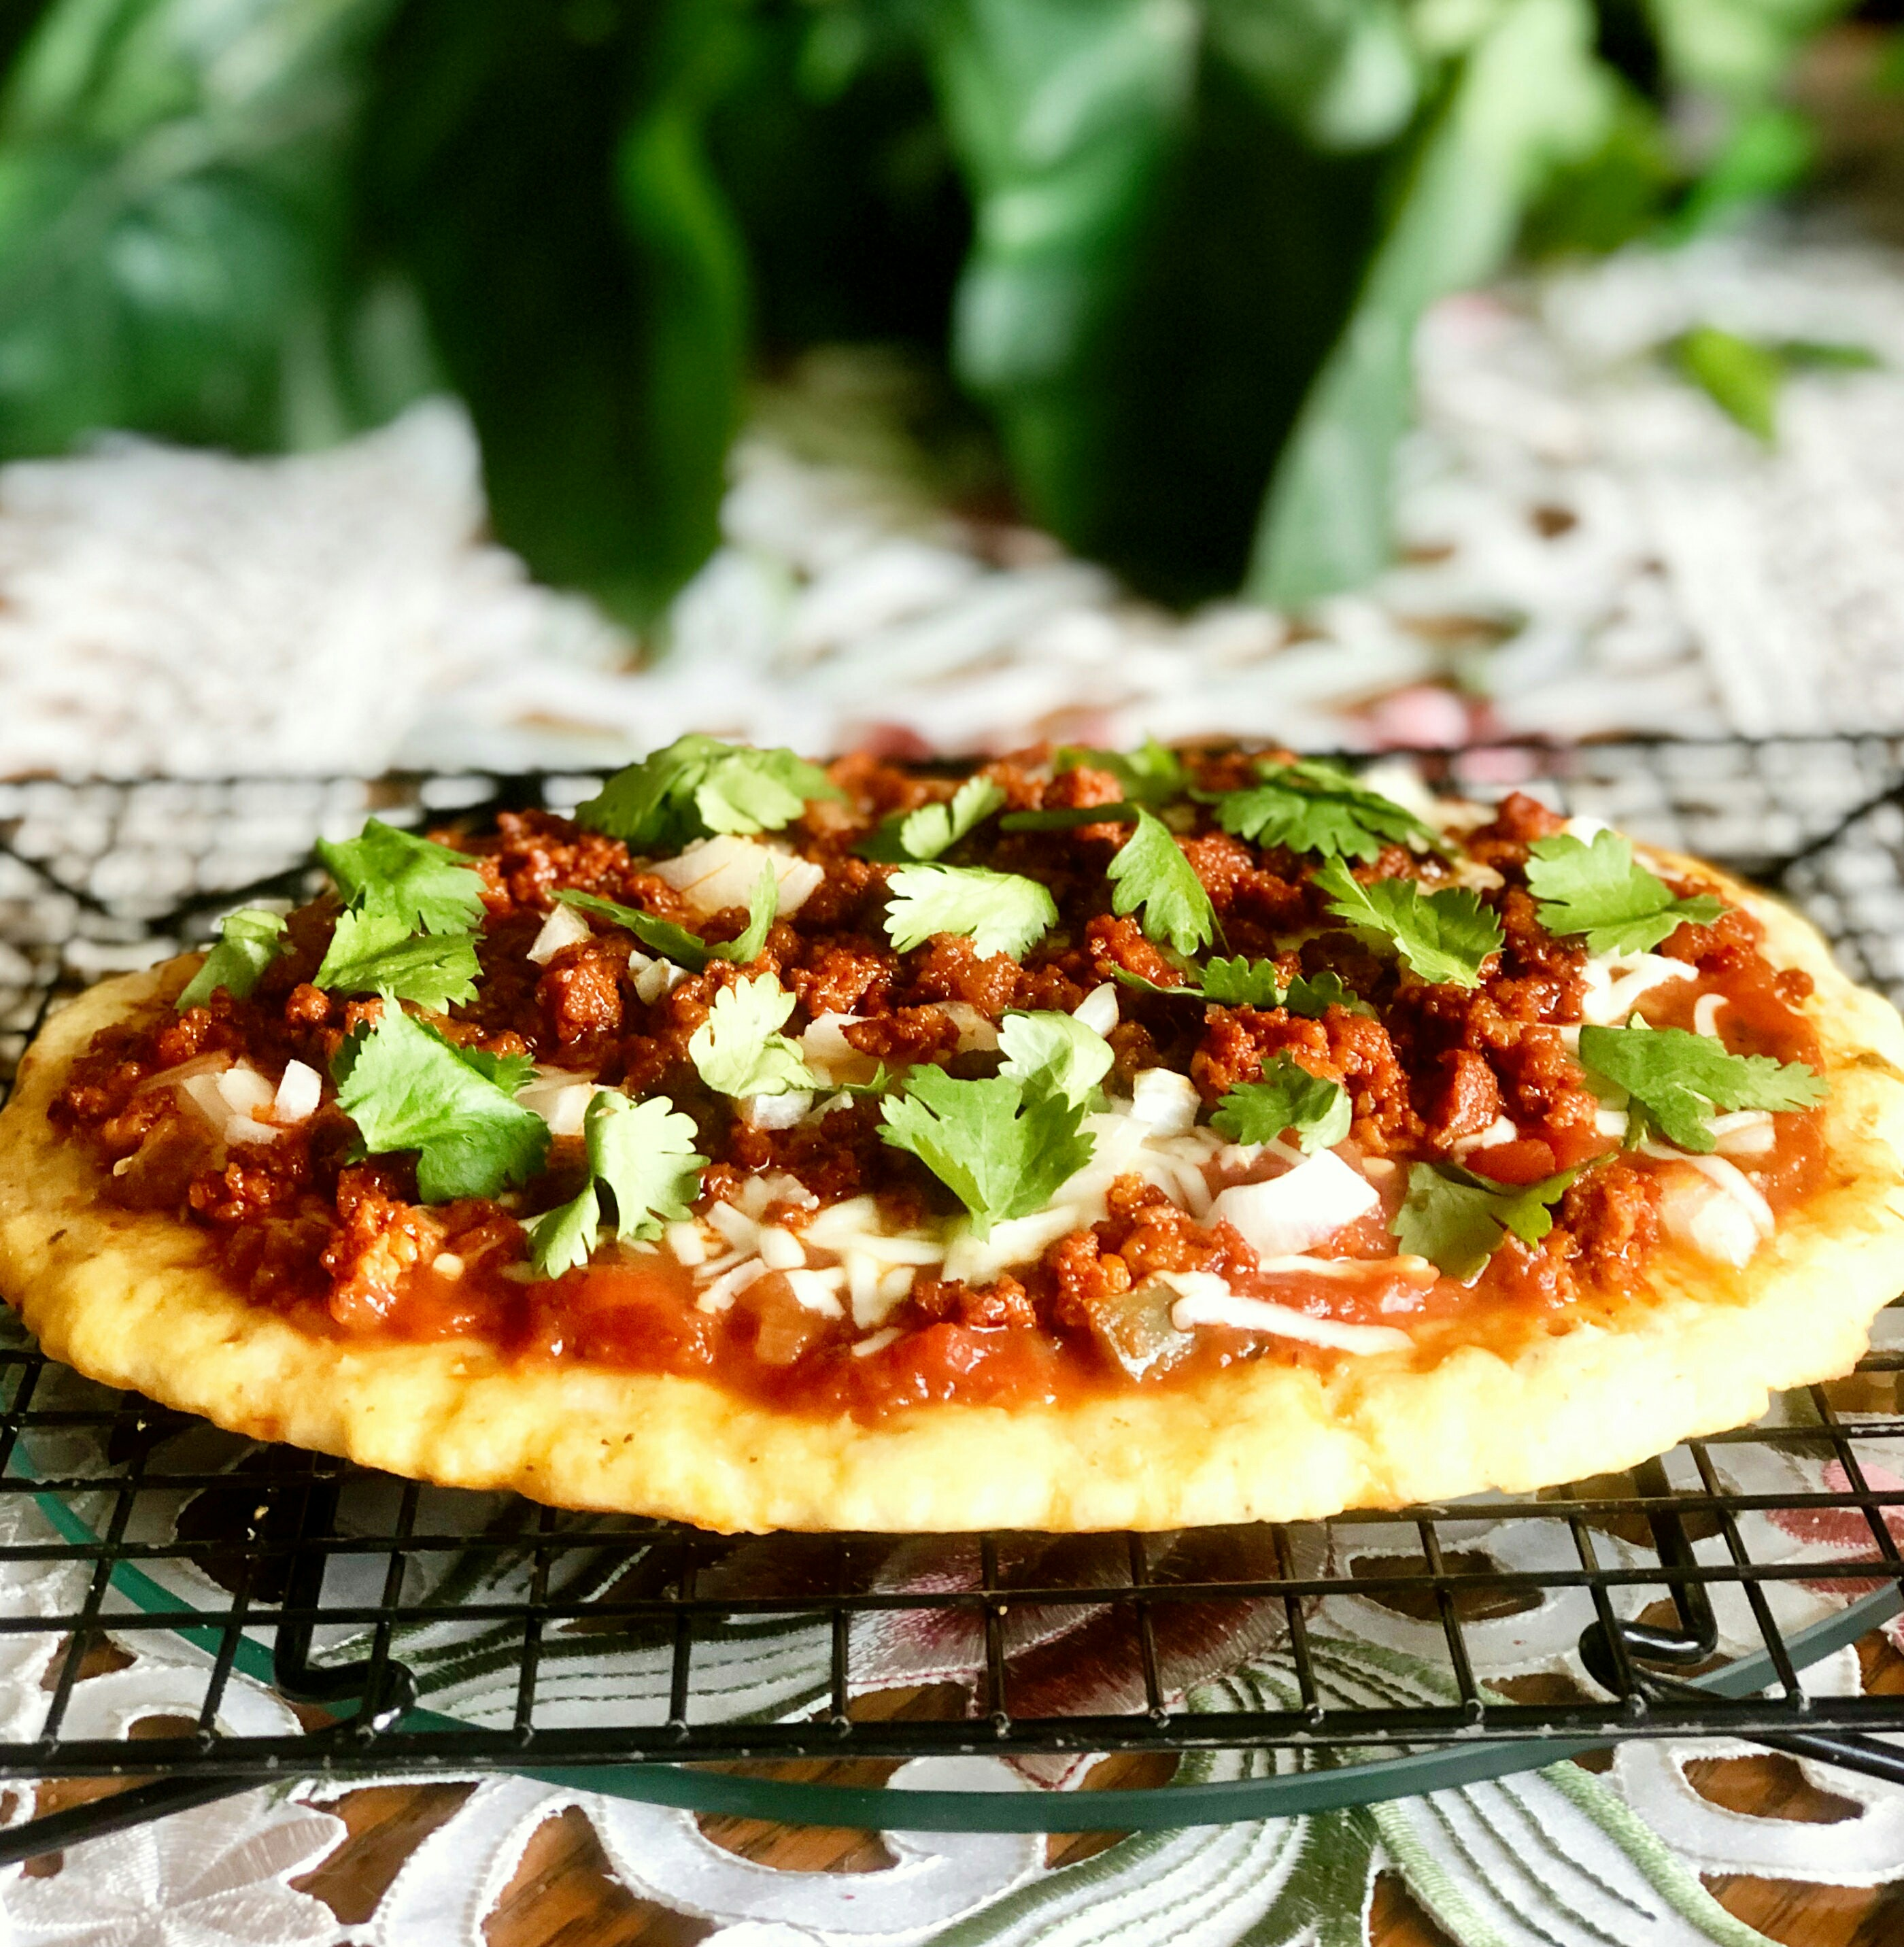 Keto Fathead Pizza with Chorizo and Salsa Yoly